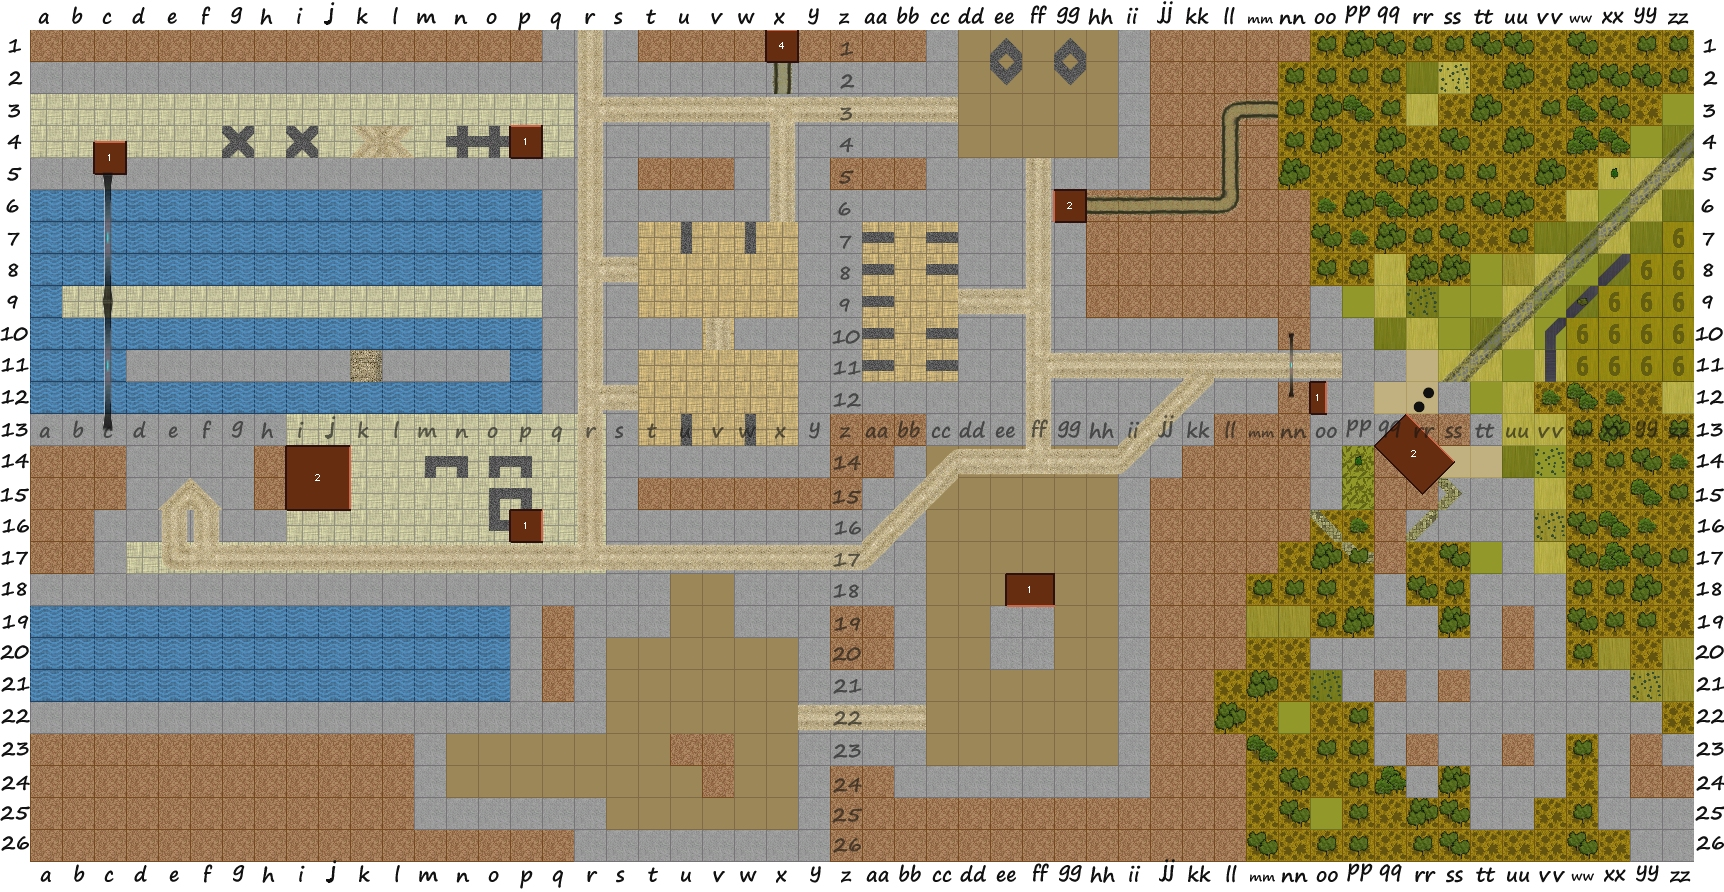 Colonel Croesus: Turn 8